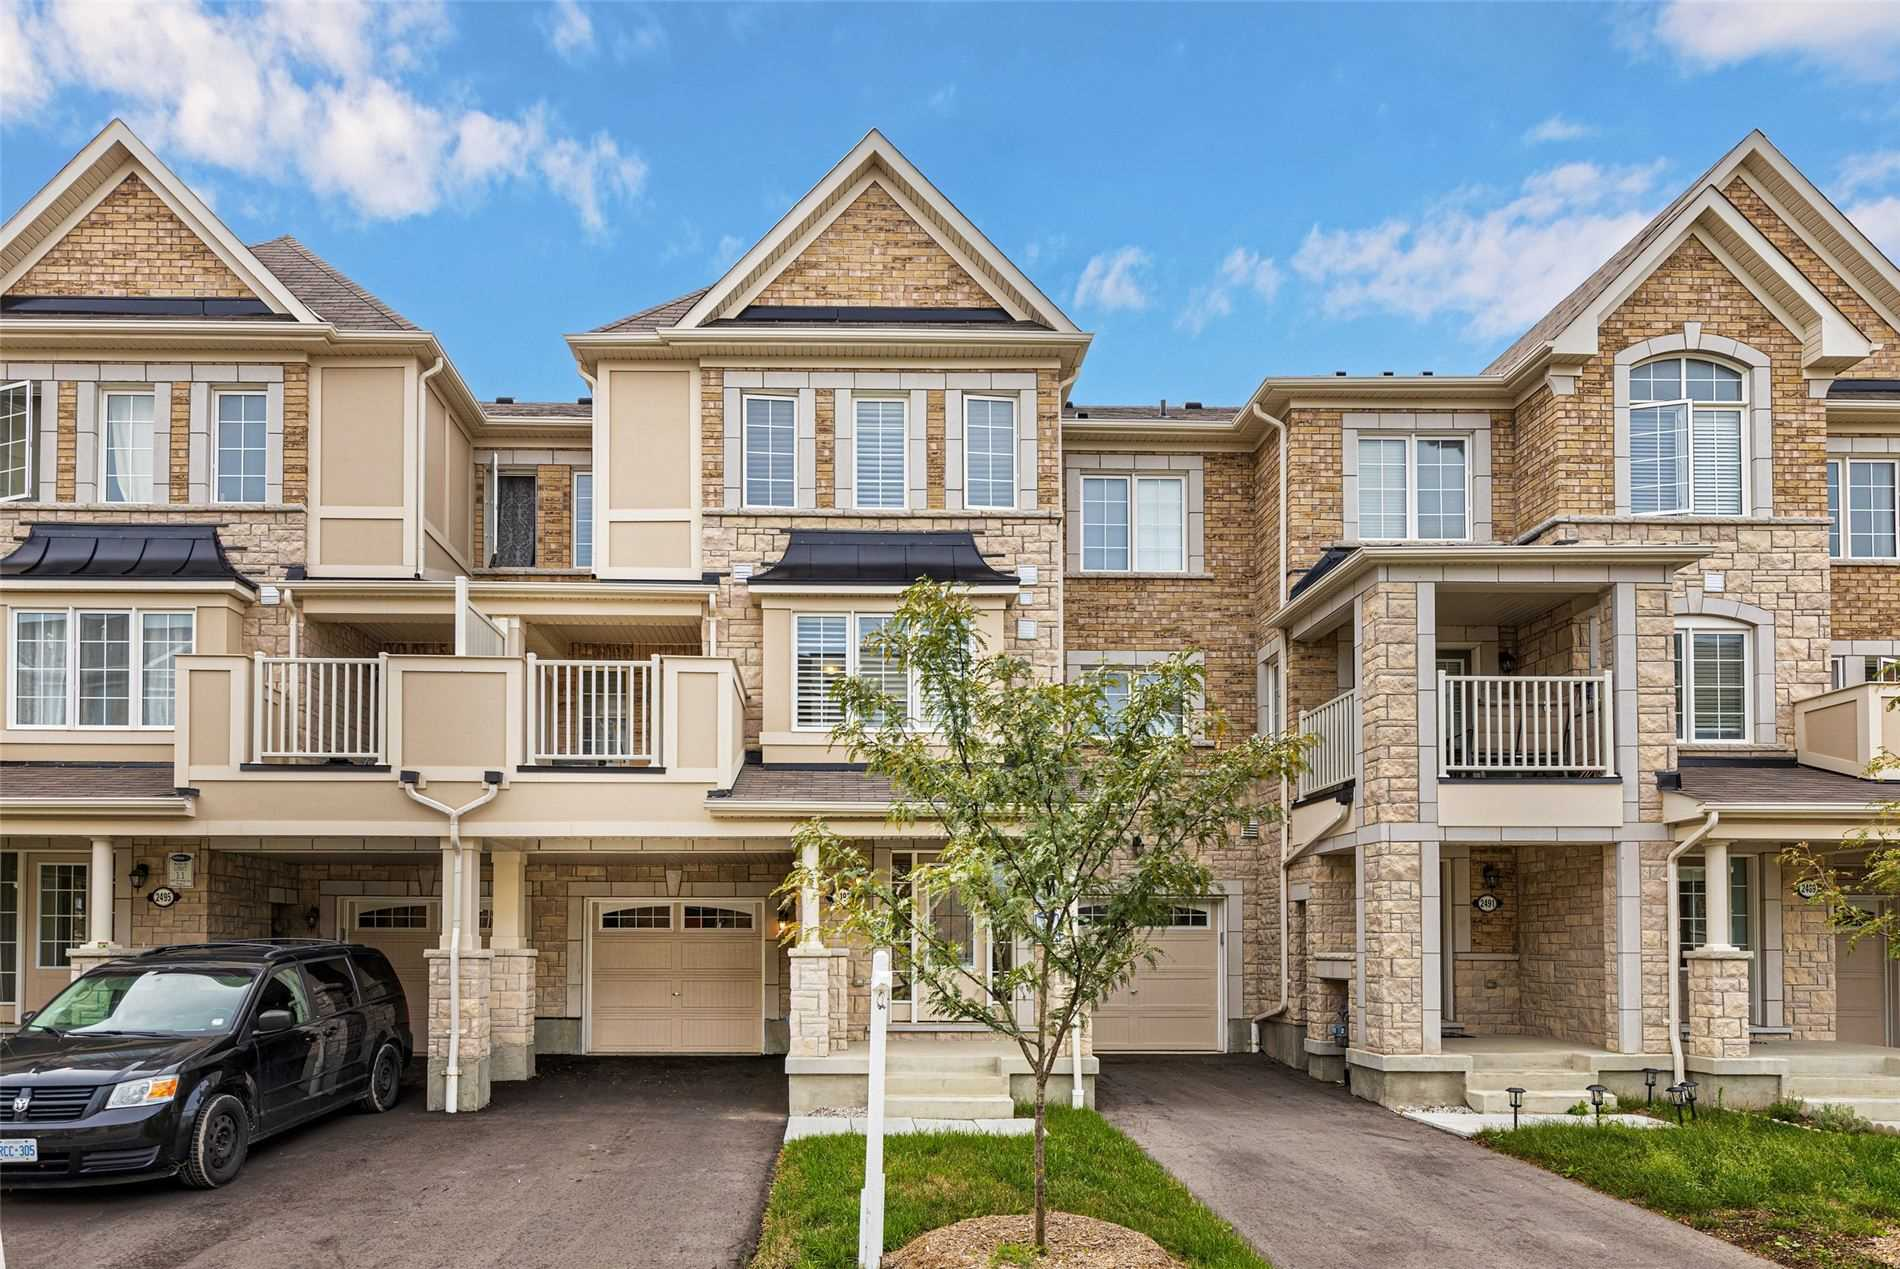 2493 Fall Harvest Cres, Pickering, Ontario L1V 2P8, 3 Bedrooms Bedrooms, ,3 BathroomsBathrooms,Att/row/twnhouse,For Sale,Fall Harvest,E5374529